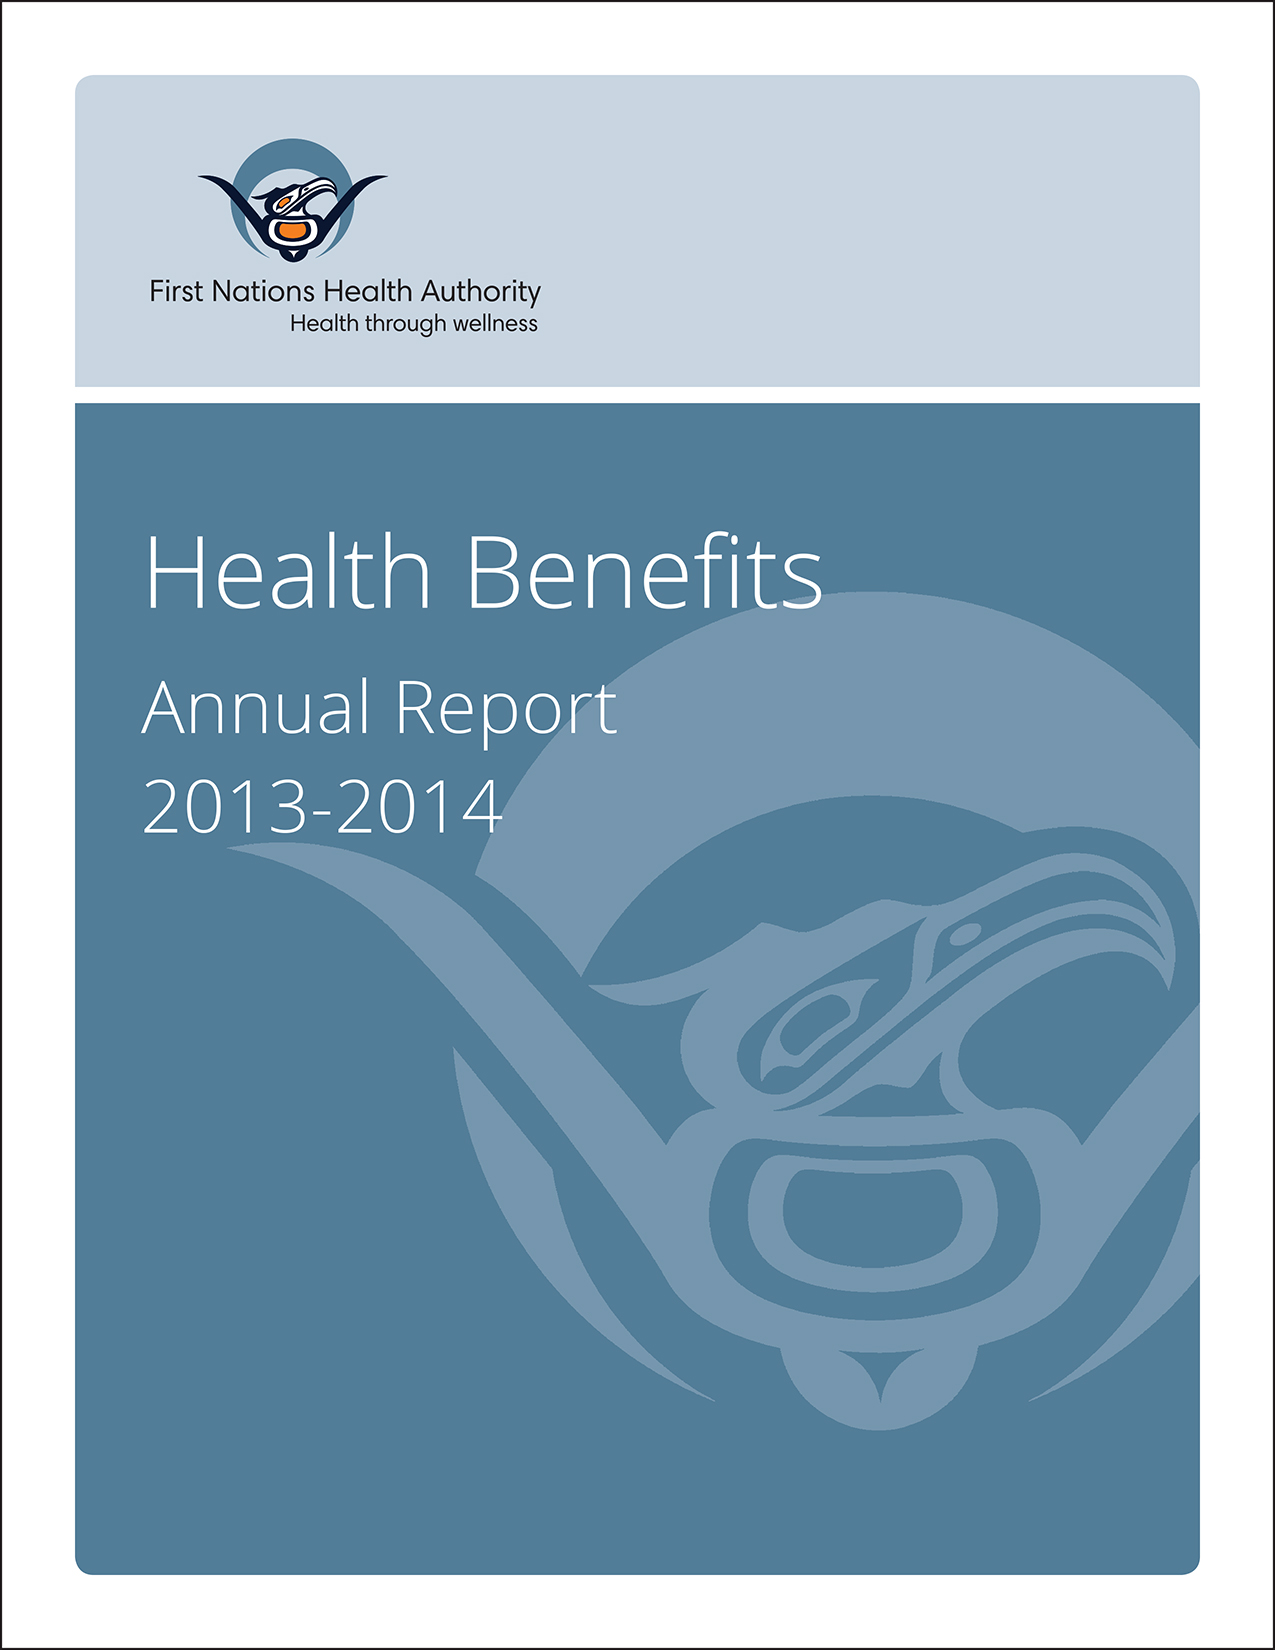 FNHA-Health-Benefits-Annual-Report-2013-14.jpg